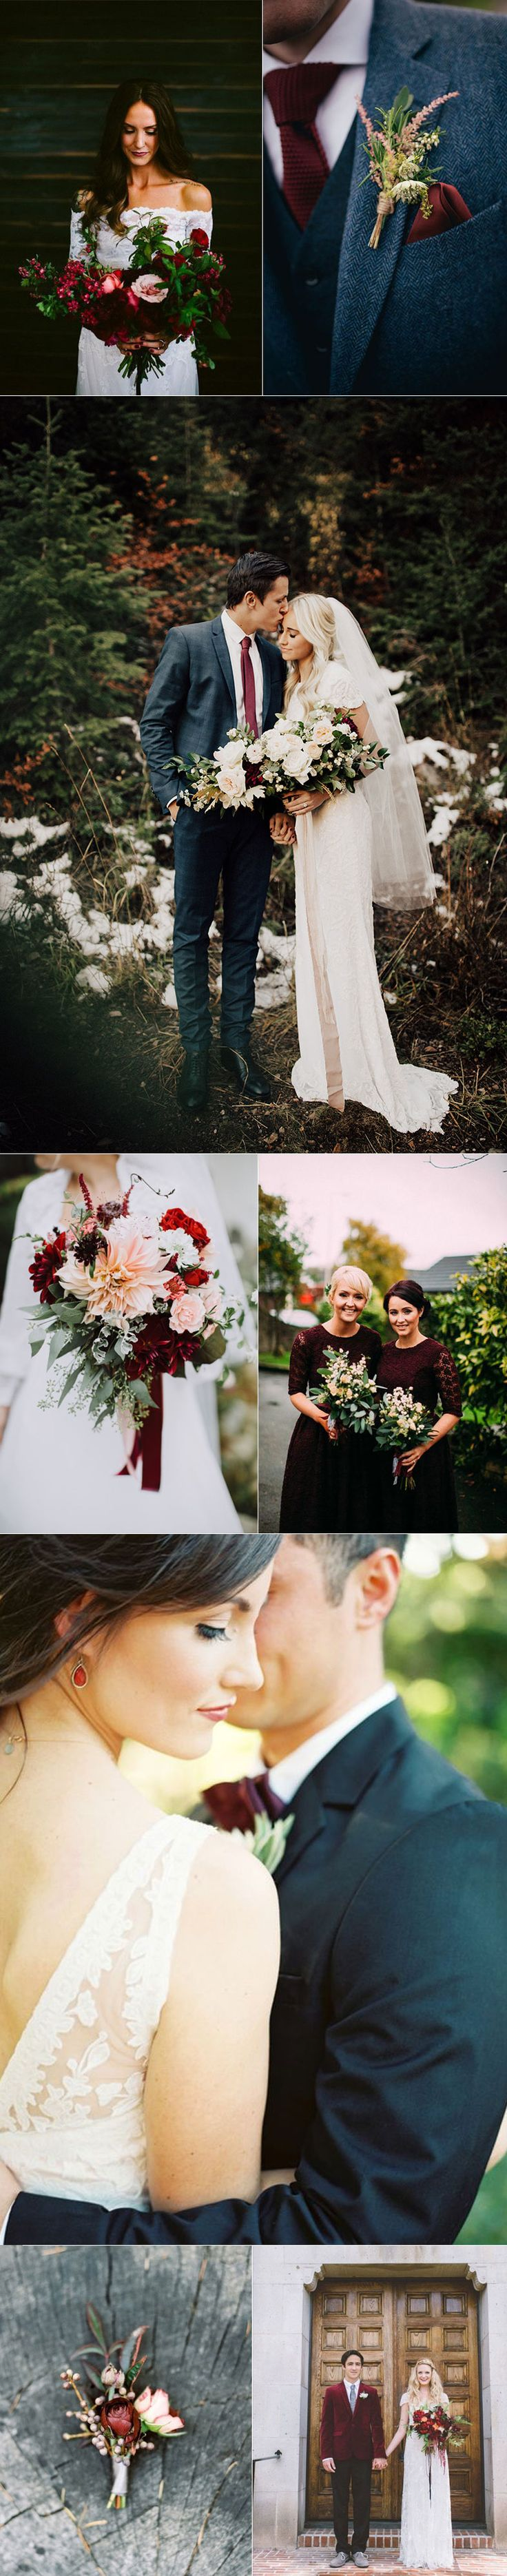 Winter Wedding in White and Oxblood